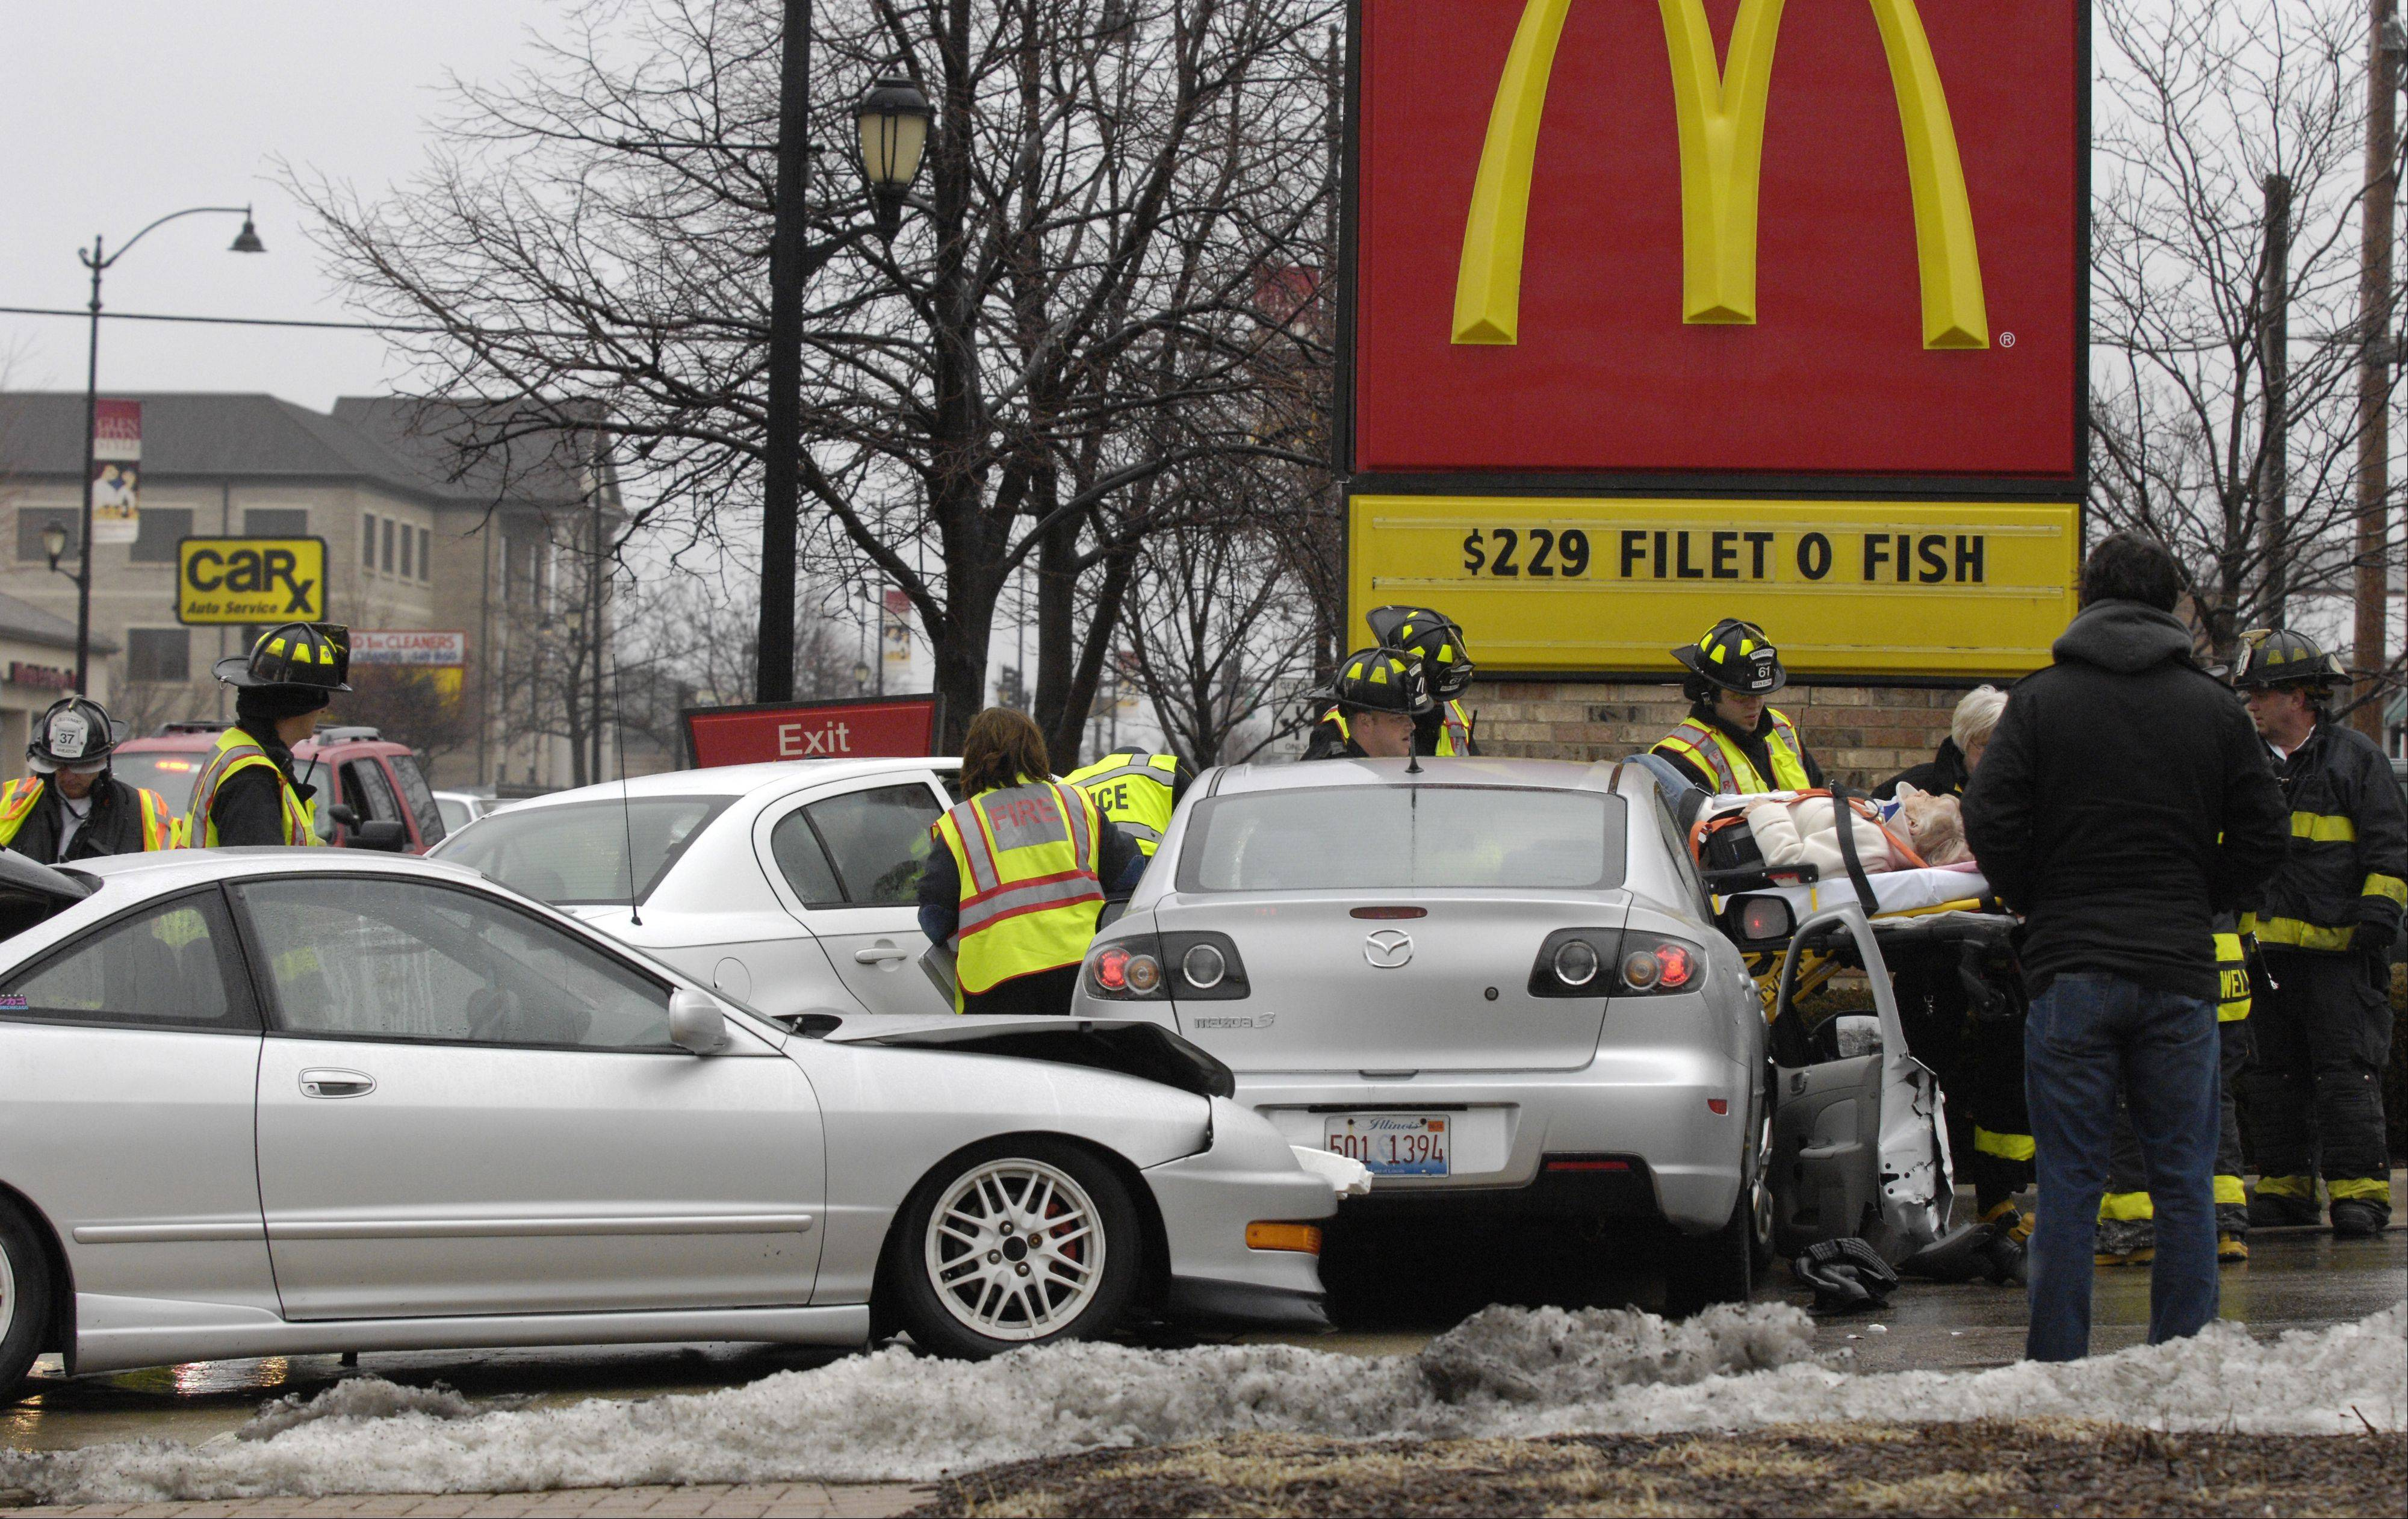 Glen Ellyn firefighters and police officers work the scene of a three-car accident Monday afternoon at the entrance of the McDonald's on Roosevelt Road.